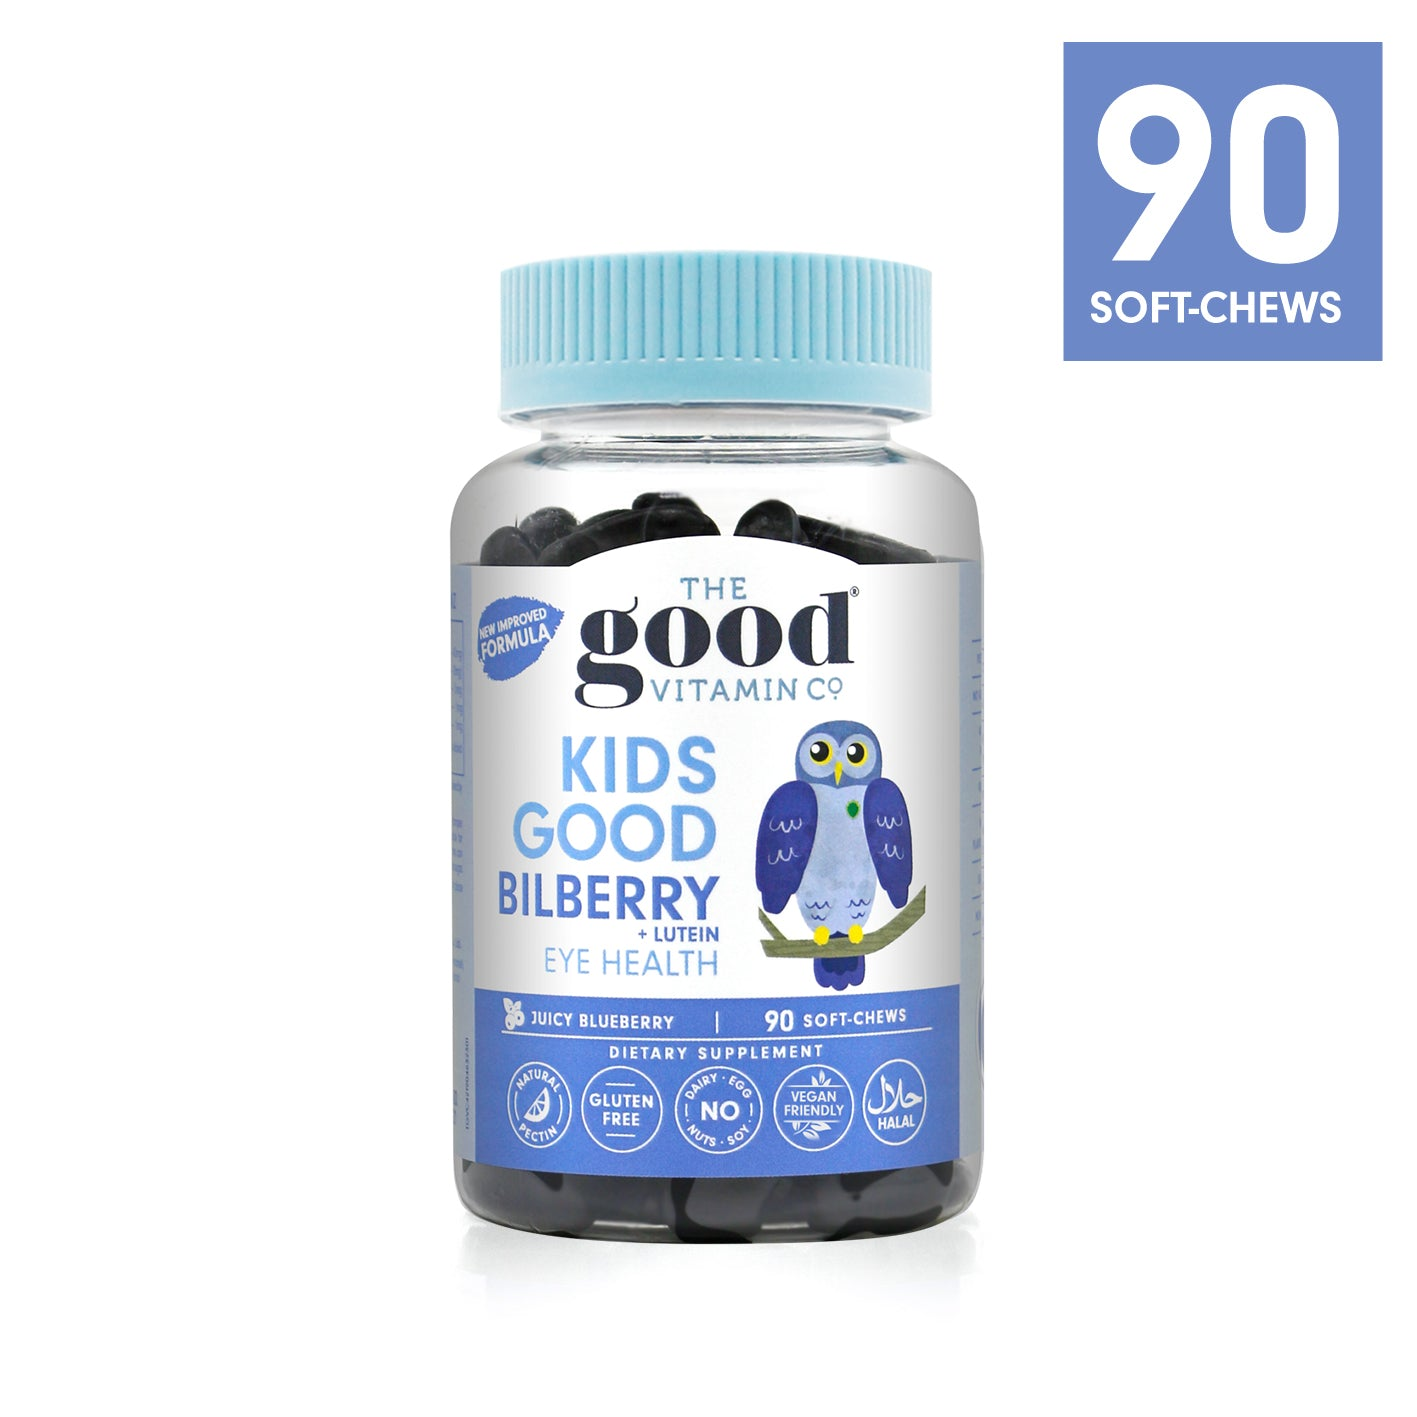 KIDS GOOD BILBERRY + LUTEIN Product Info Link